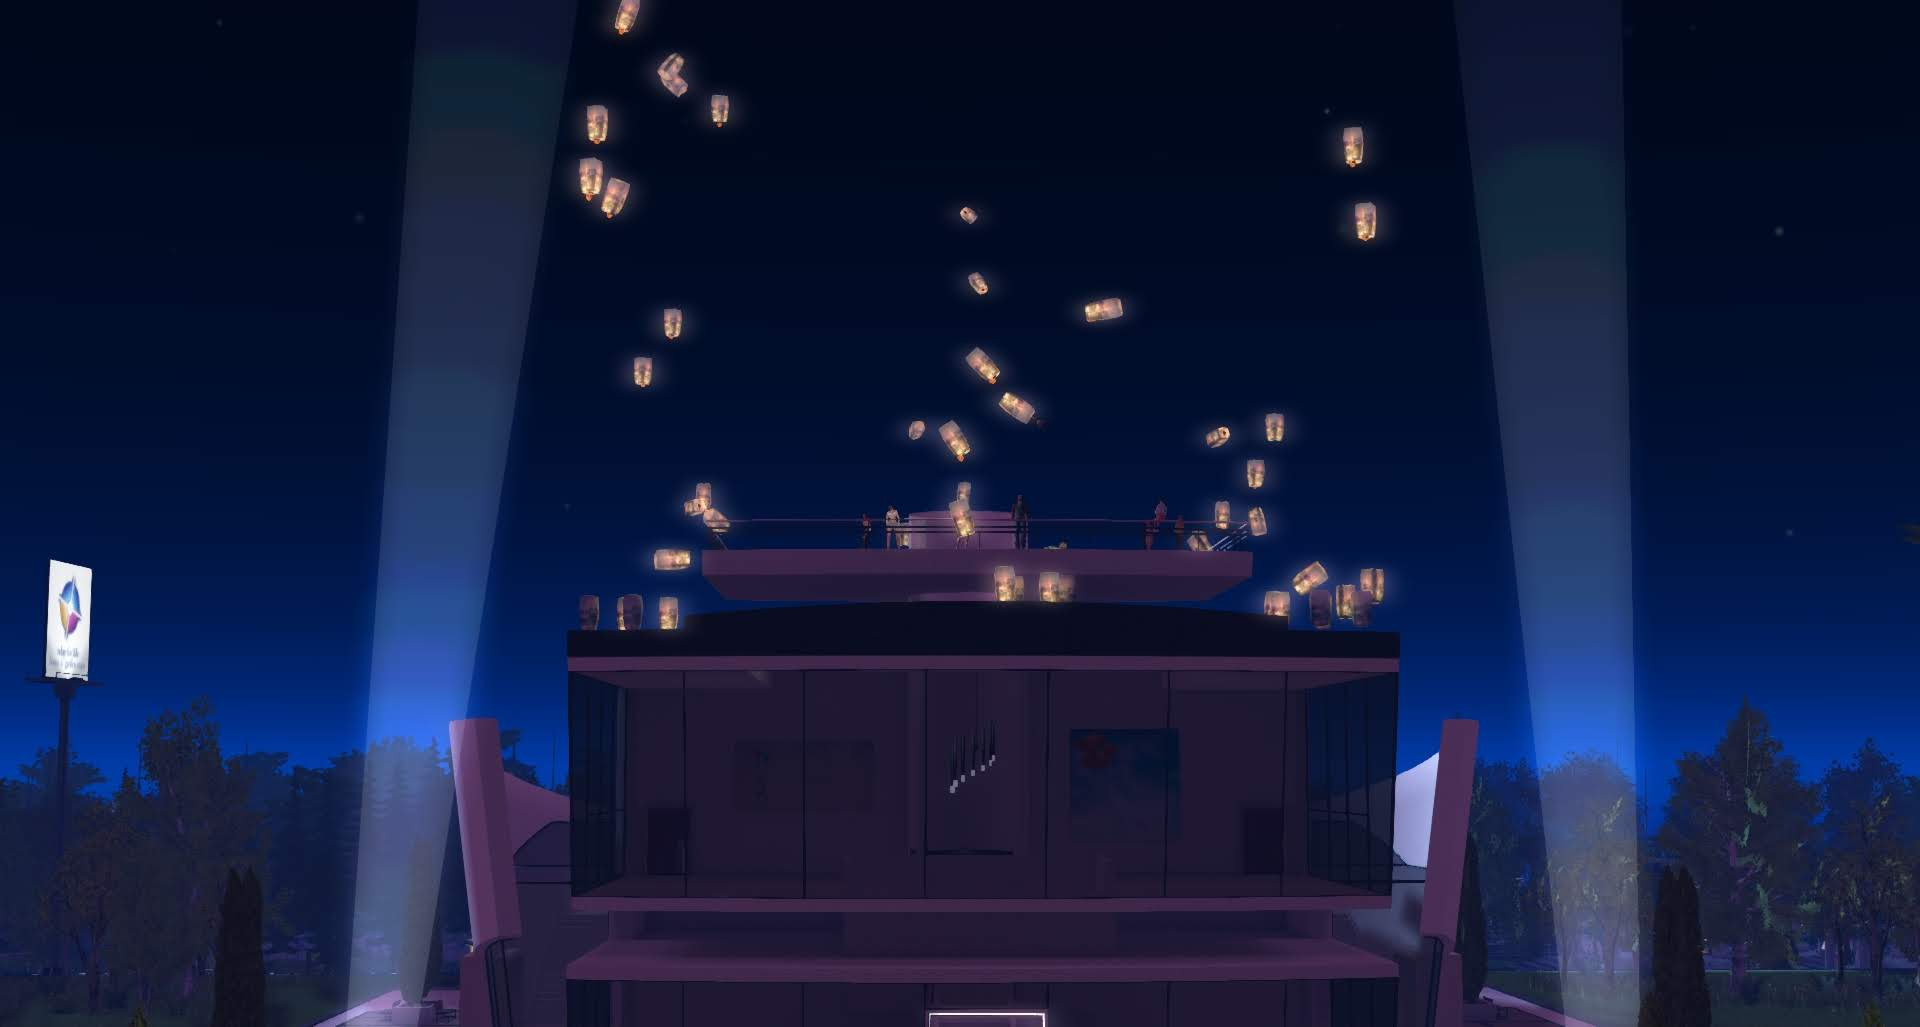 Lantern Release, photographed by Wildstar Beaumont